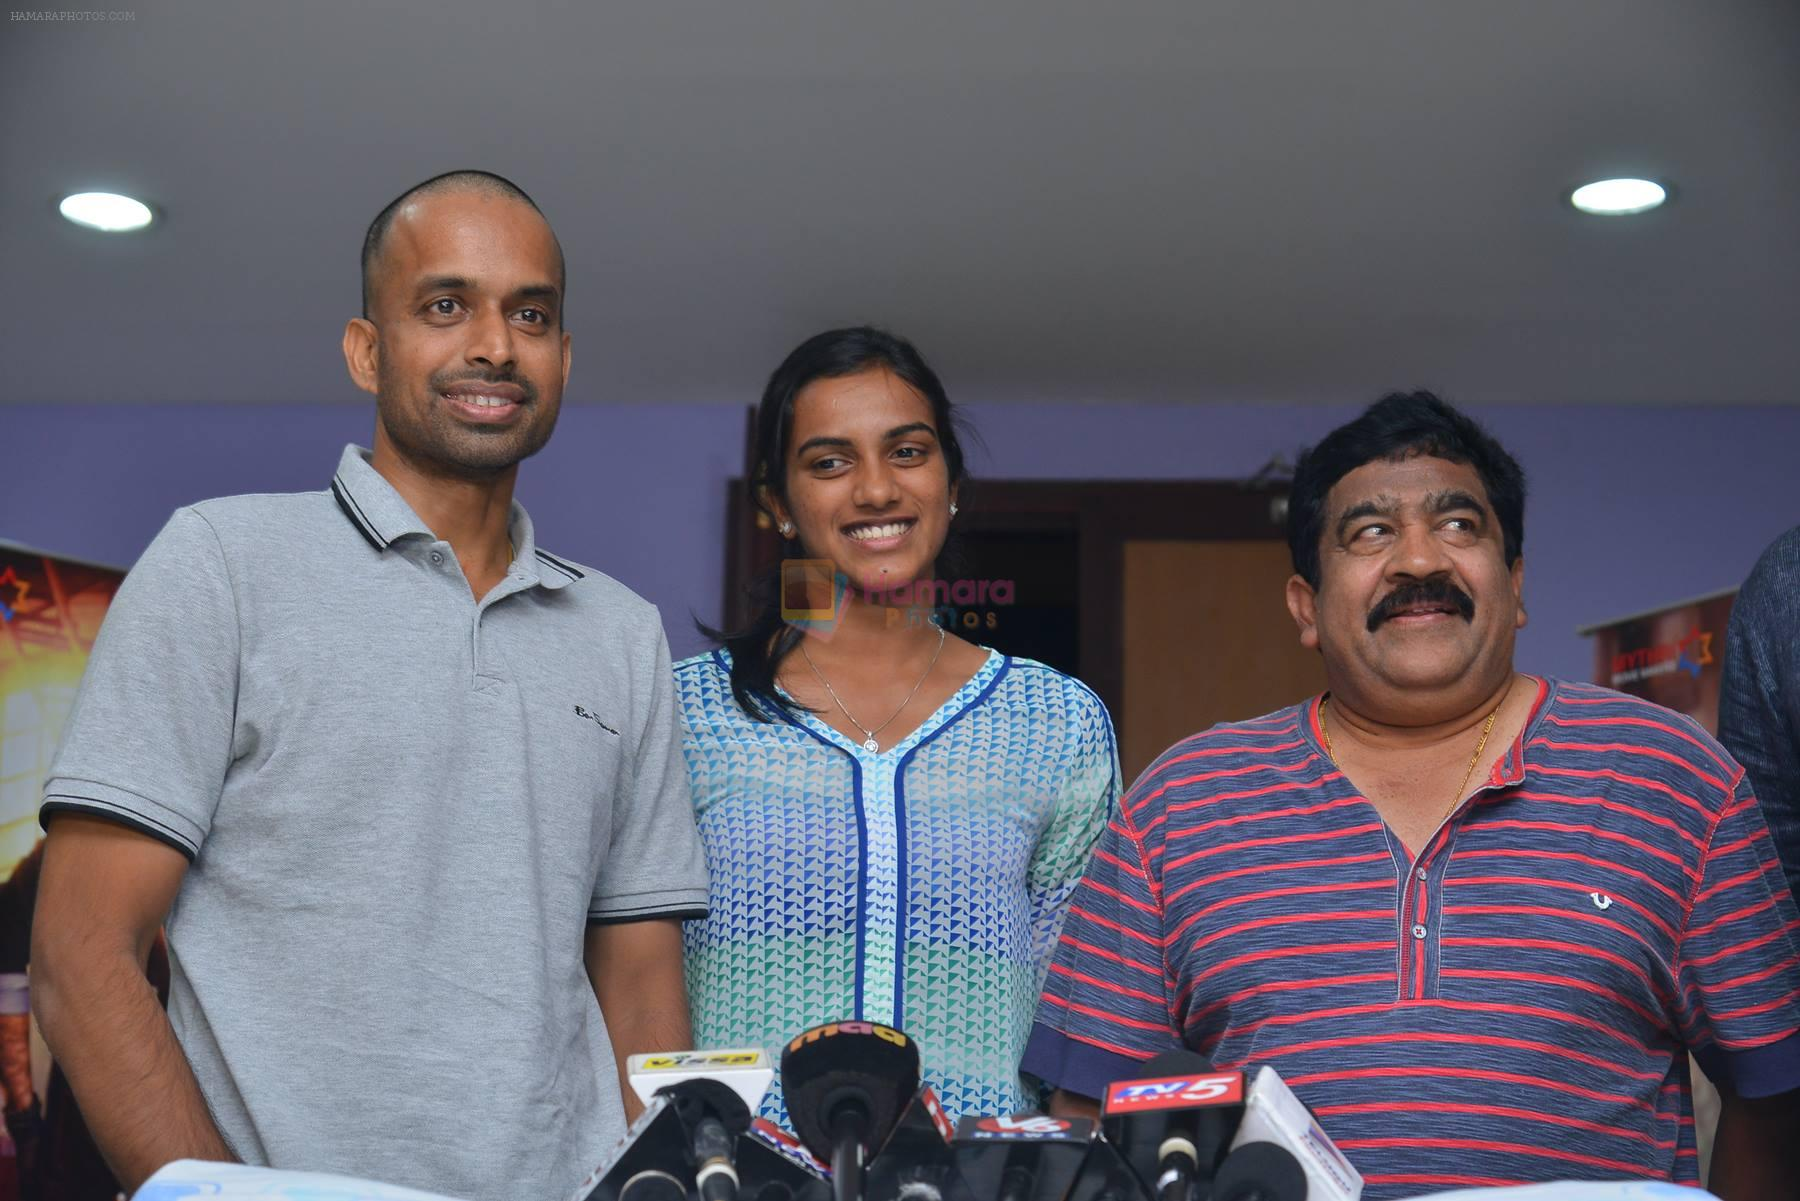 PV Sindhu, Pullela Gopichand, Chamundeswaranath at Janatha Garage show on 11th Sept 2016